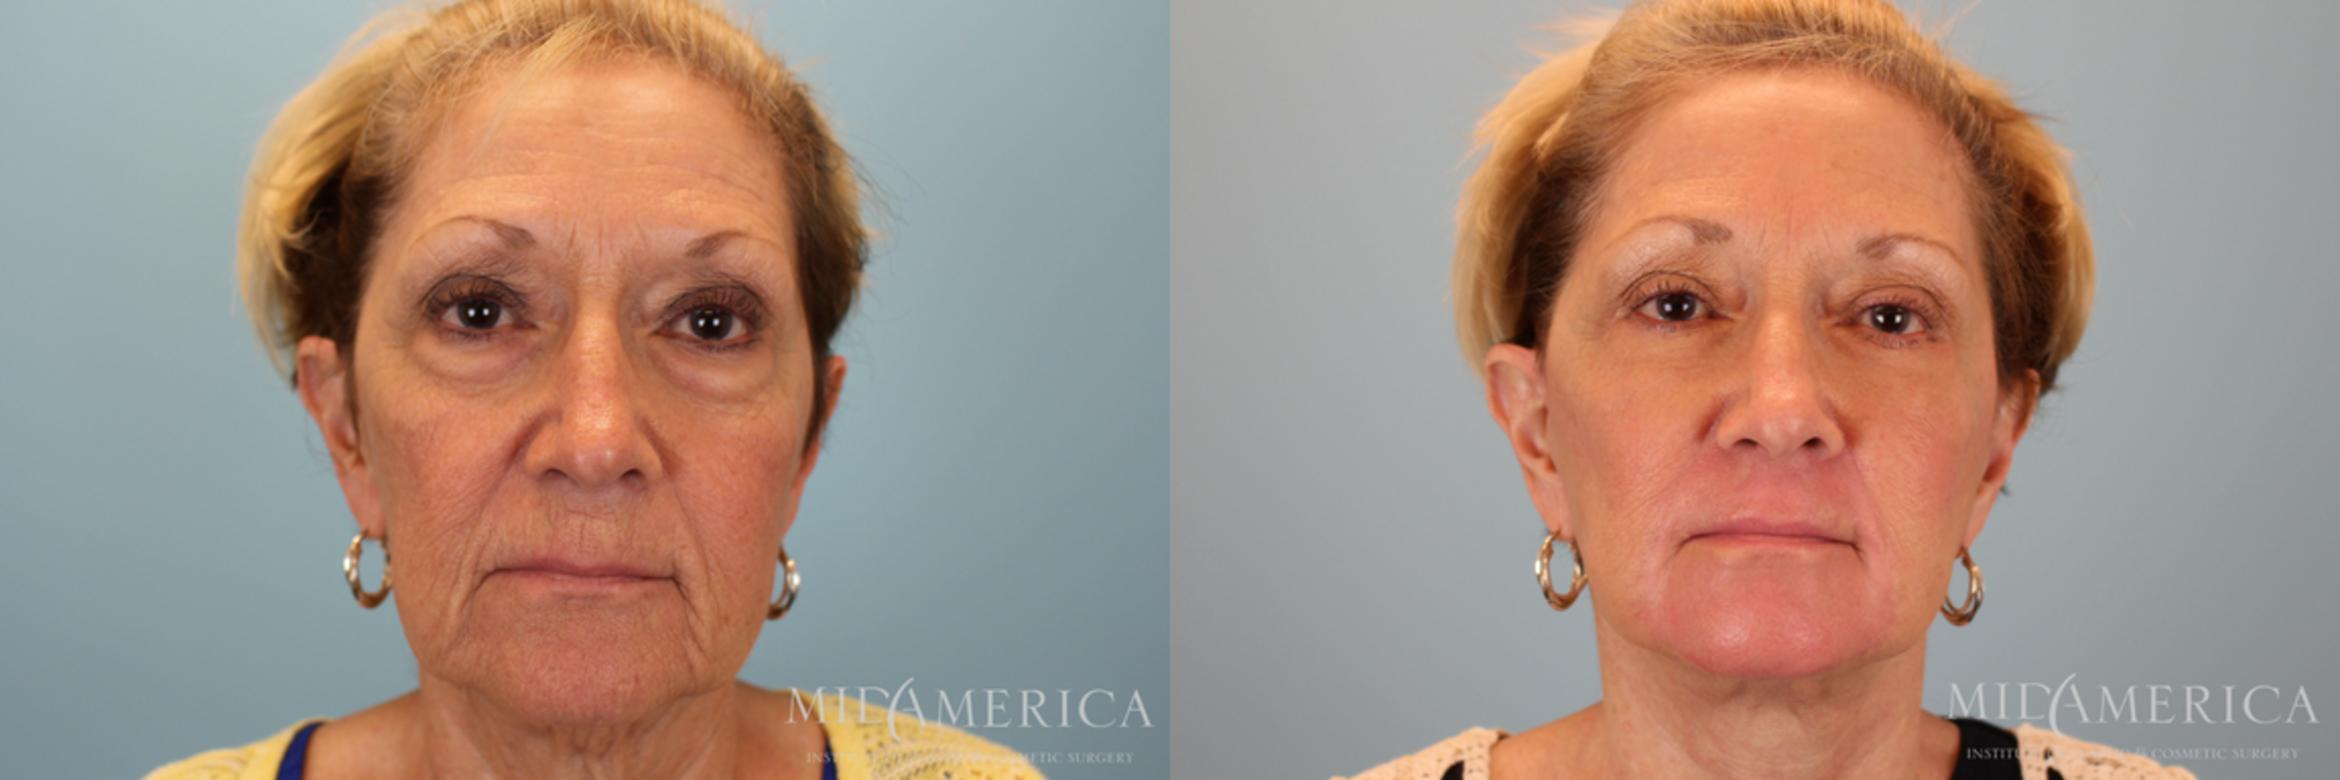 Facelift Case 30 Before & After View #1 | Glen Carbon, IL | MidAmerica Plastic Surgery